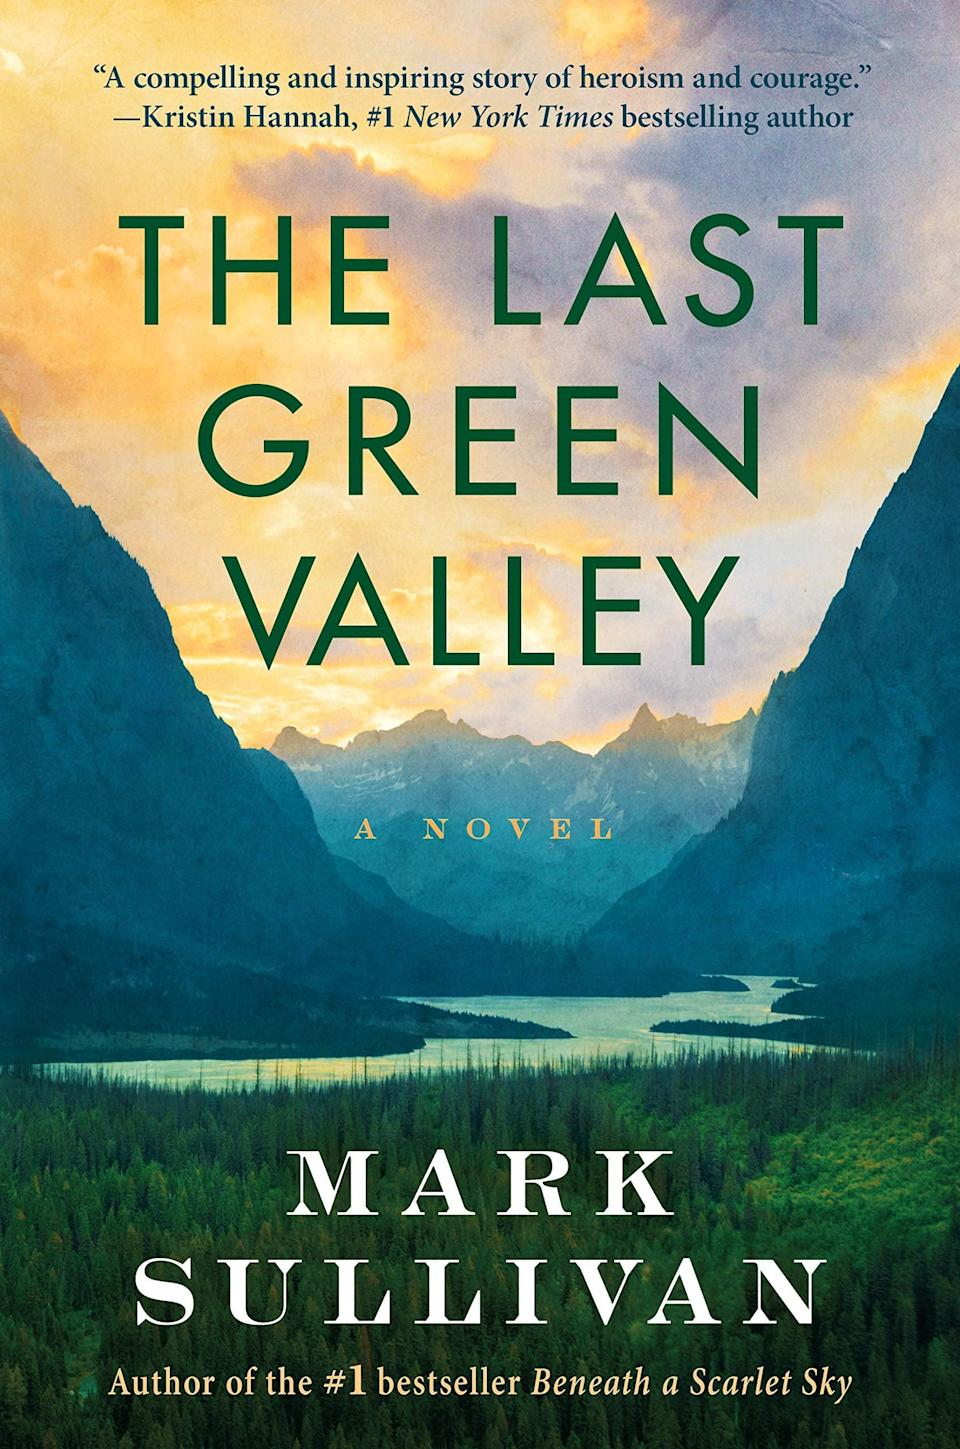 """<p>Set during the final days of World War II, <span><strong>The Last Green Valley</strong></span> by Mark Sullivan follows Emil and Adeline Martel as they make the impossible decision to wait for Russia to take over their Ukrainian village or join the hated German Nazis who swear they'll protect them due to their status as """"pure-blood"""" Germans. Ultimately, they opt to go with the Germans, leaving them trapped between two powerful and dangerous forces as they search for a safe place to call home. </p> <p><em>Out May 4</em></p>"""